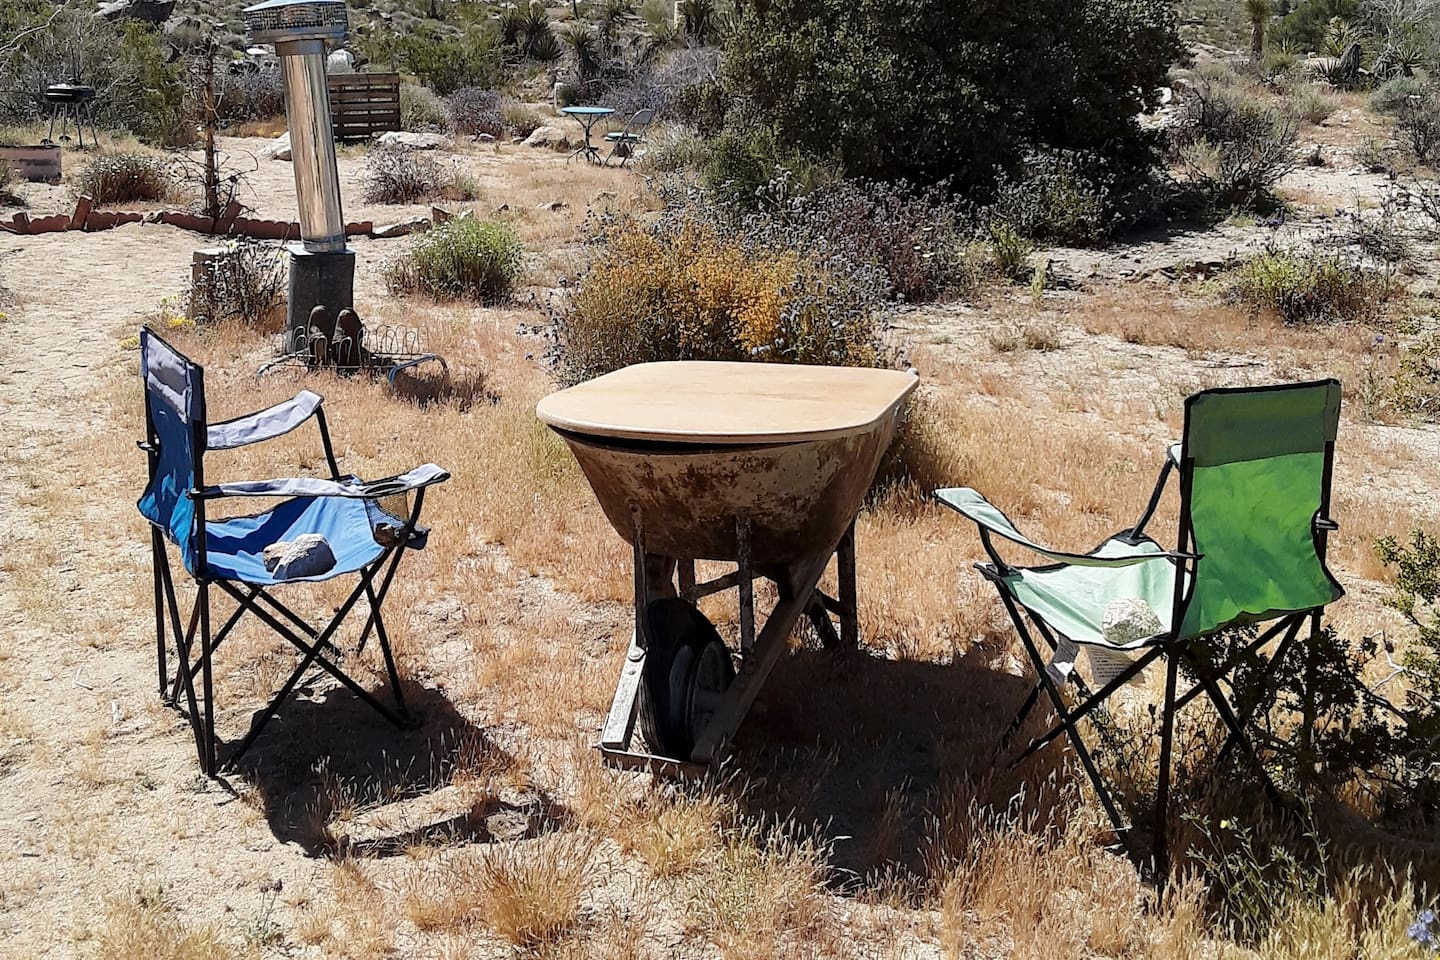 PapaDaddyO campsite has iron board, for your stove, a place to hang your shoes, and a wheel barrel for your table.